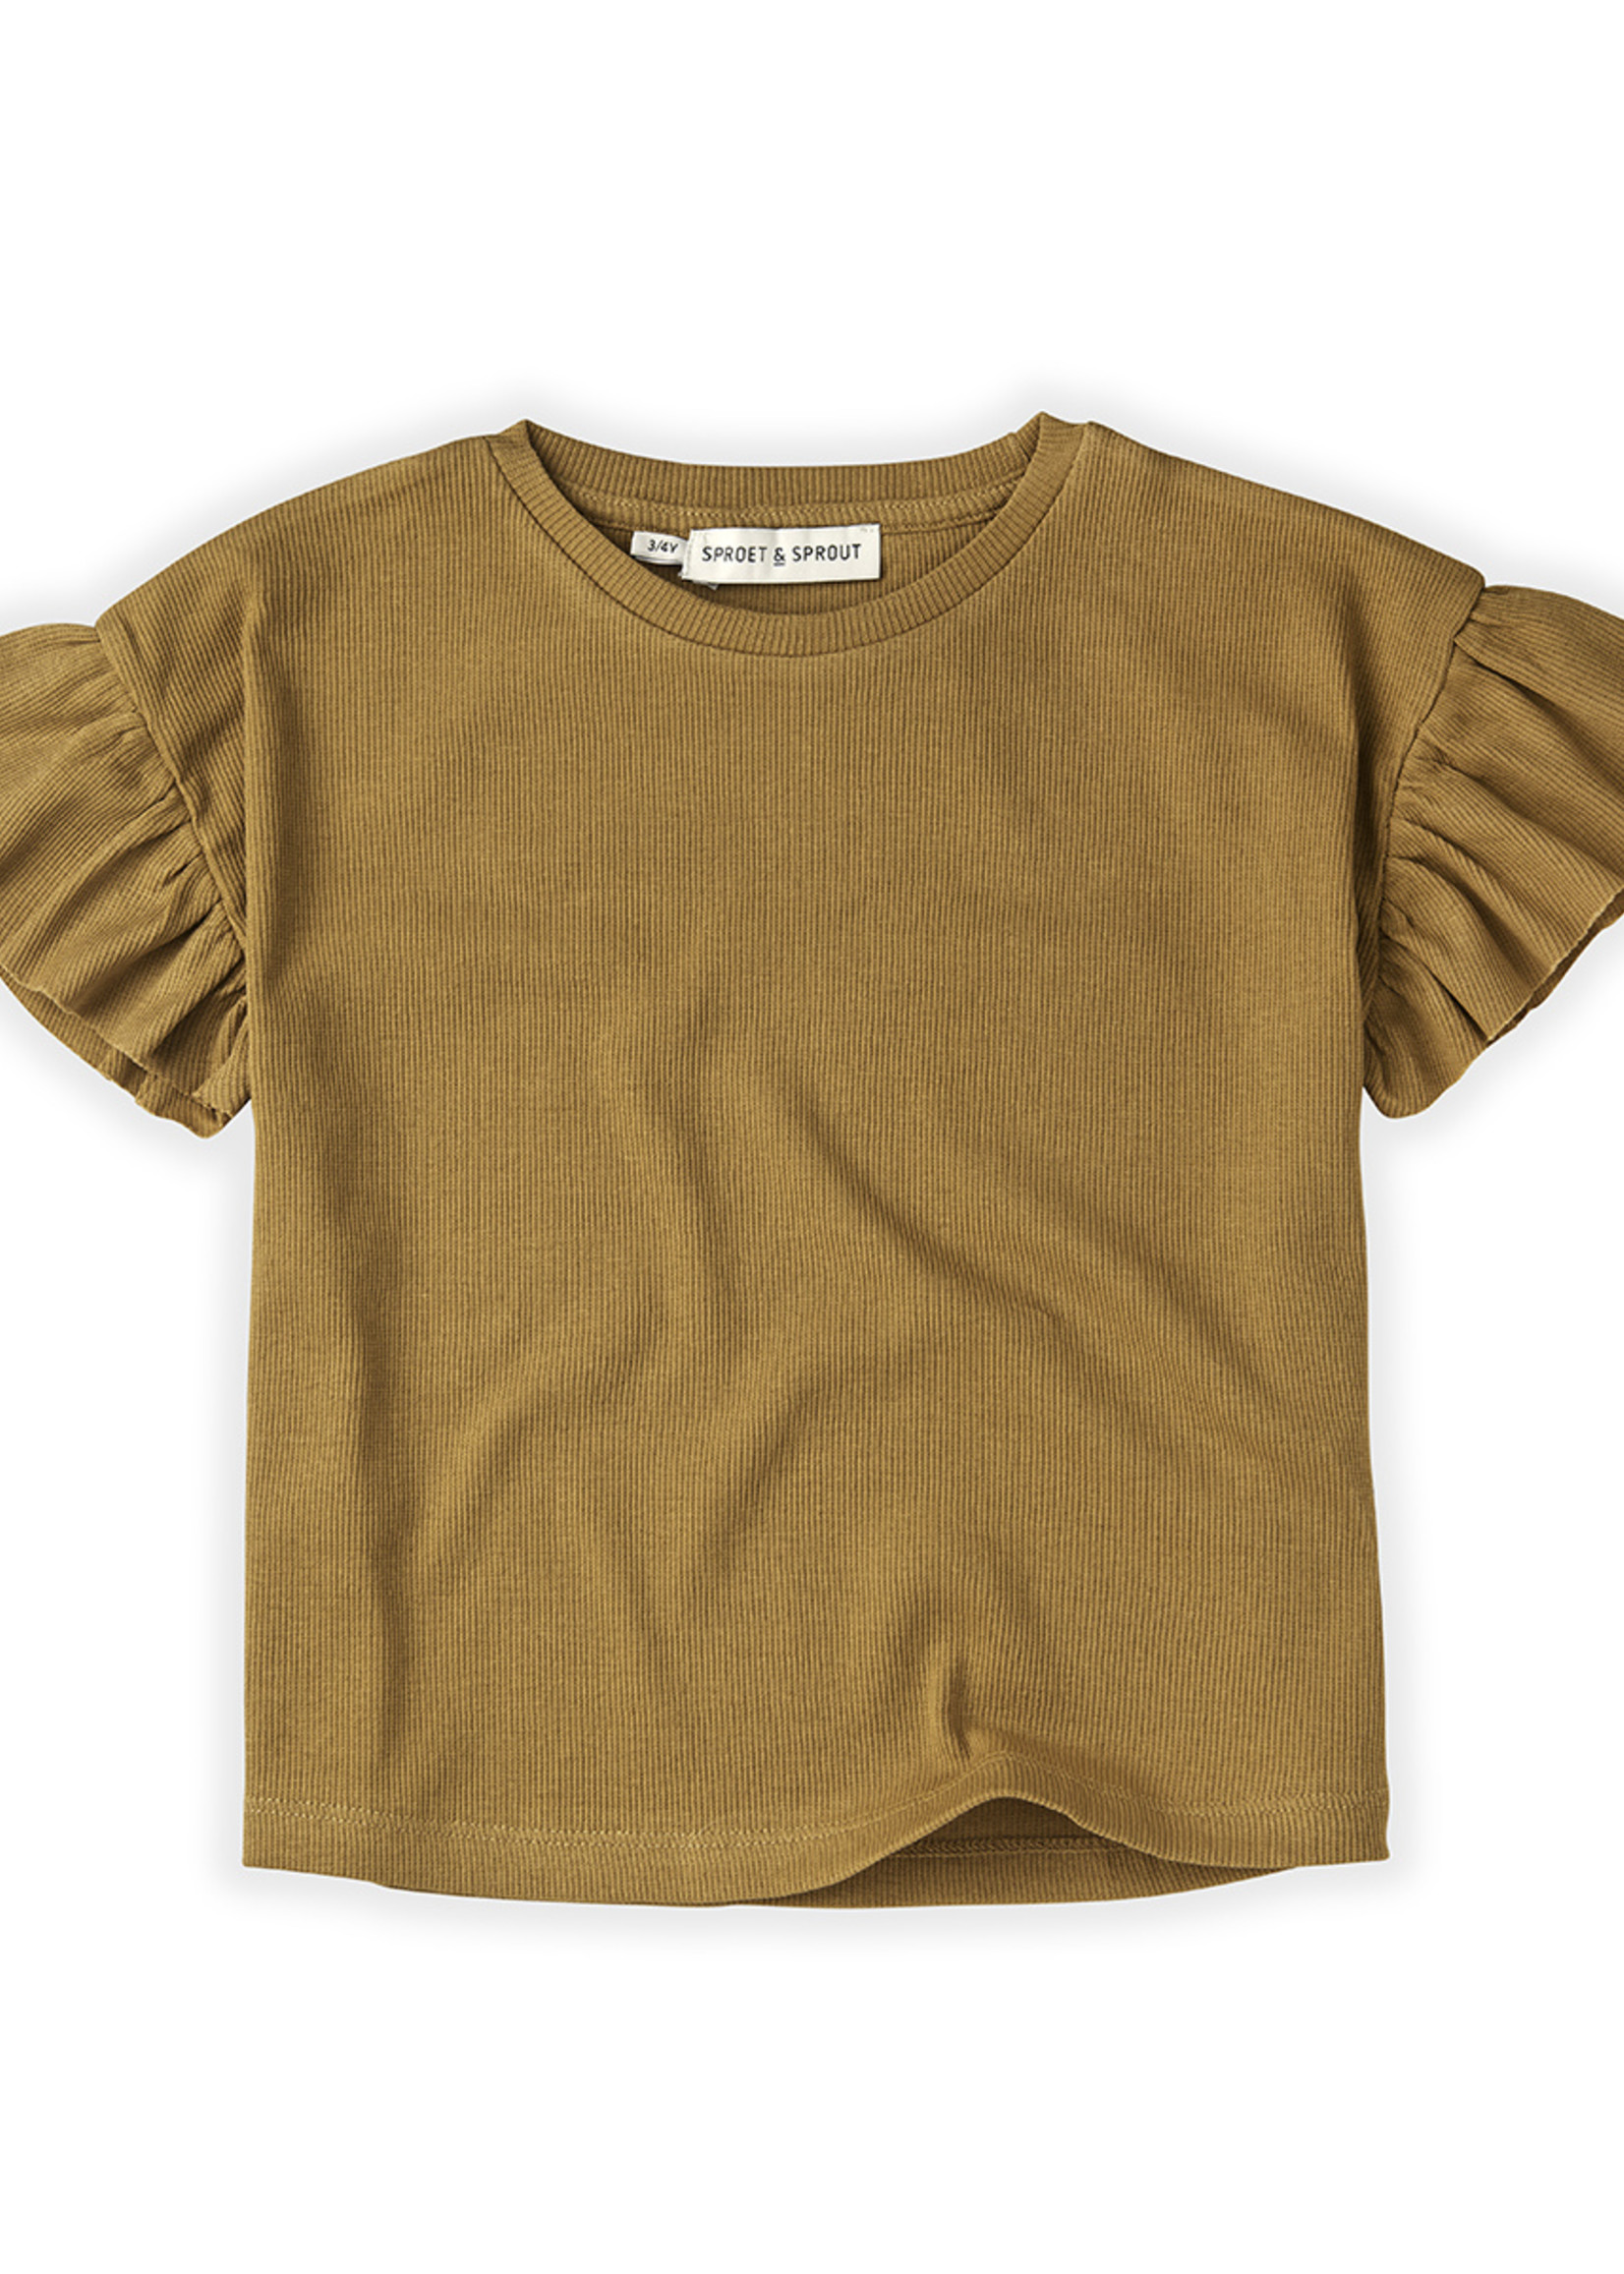 Sproet & Sprout SS - T-Shirt Rib Ruffle Camel